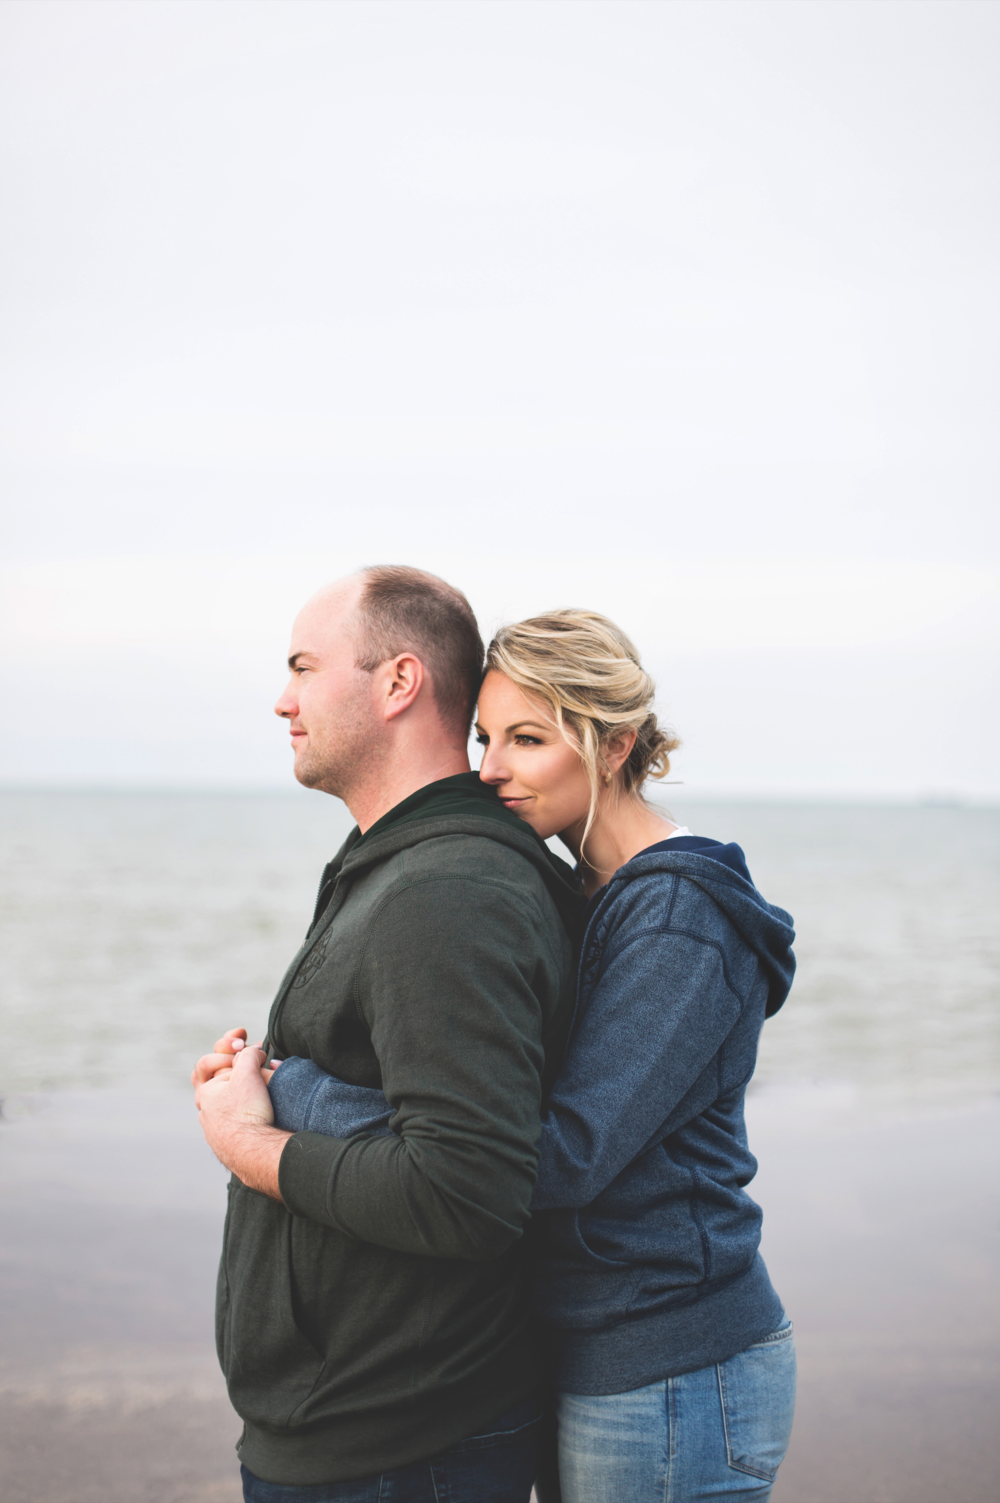 Engagement-Session-Hamilton-Burlington-Oakville-Toronto-Niagara-Wedding-Photographer-Engaged-Photography-Waterfront-HamOnt-Engaged-Moments-by-Lauren-Photo-Image-11.png